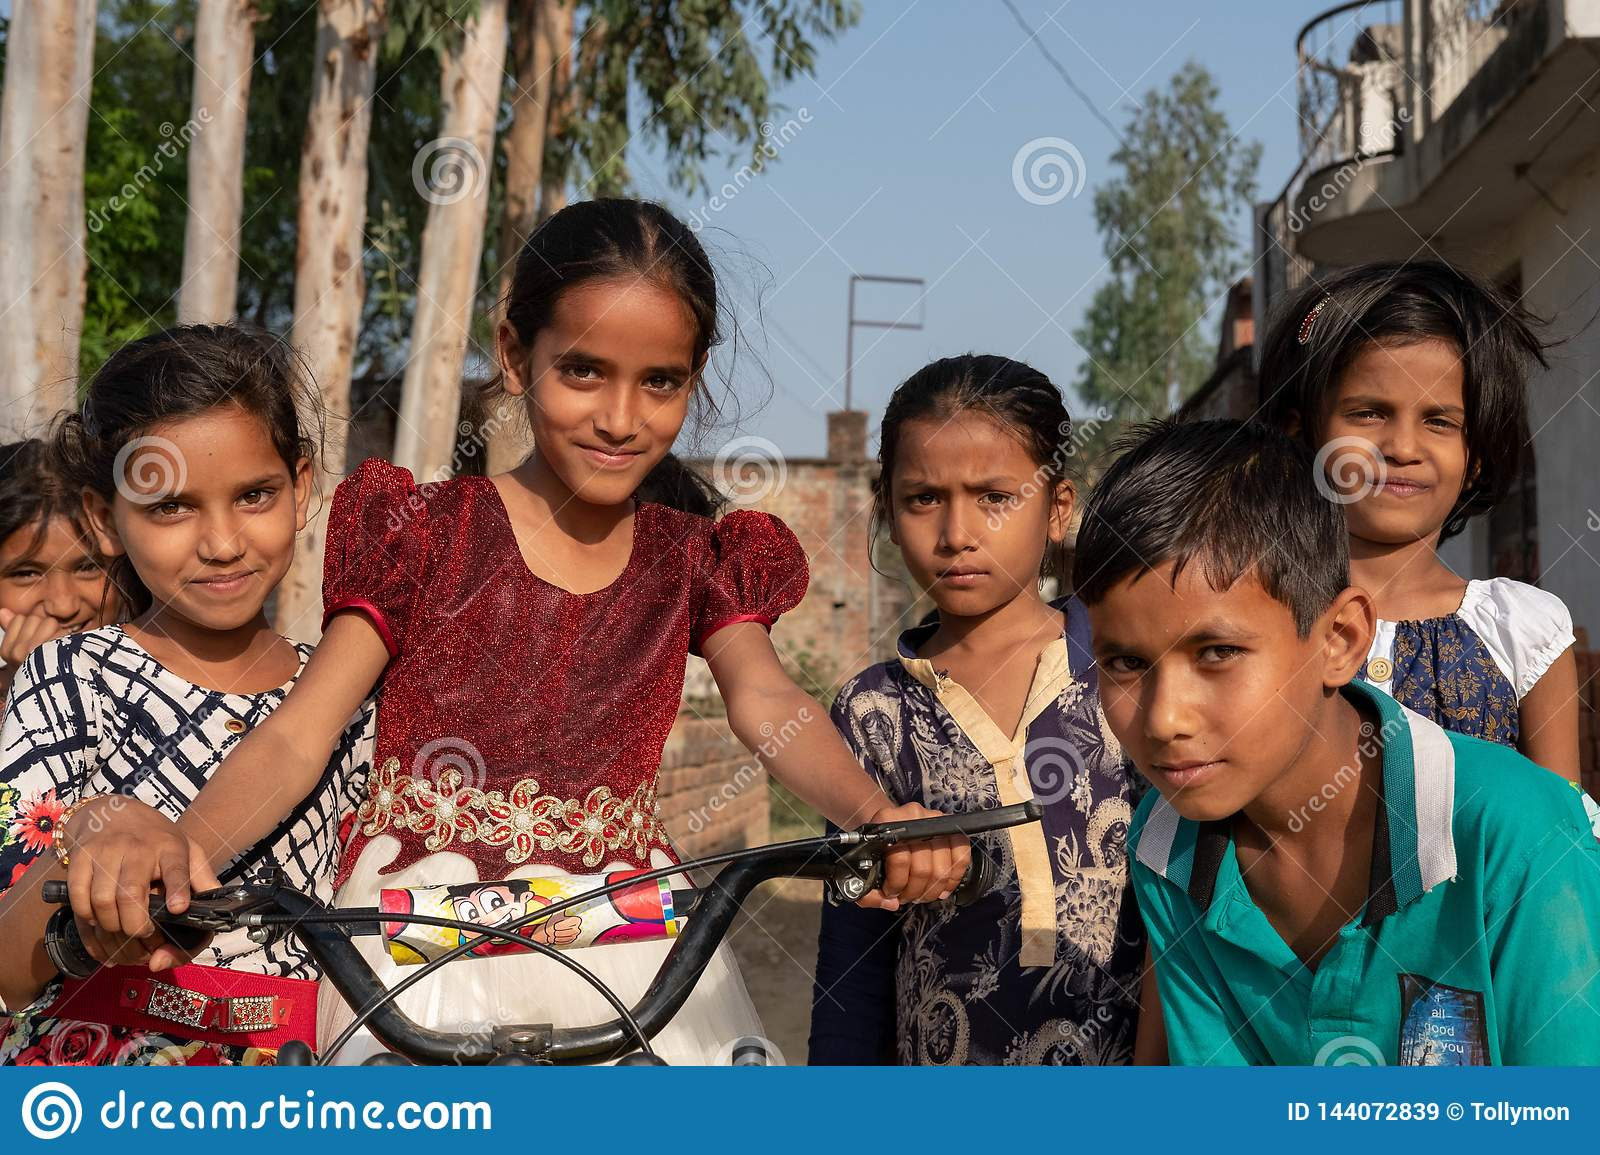 Bhadarsa, Uttar Pradesh / India - April 2, 2019: A group of kids pose for a photo outside of their village near Bhadarsa.